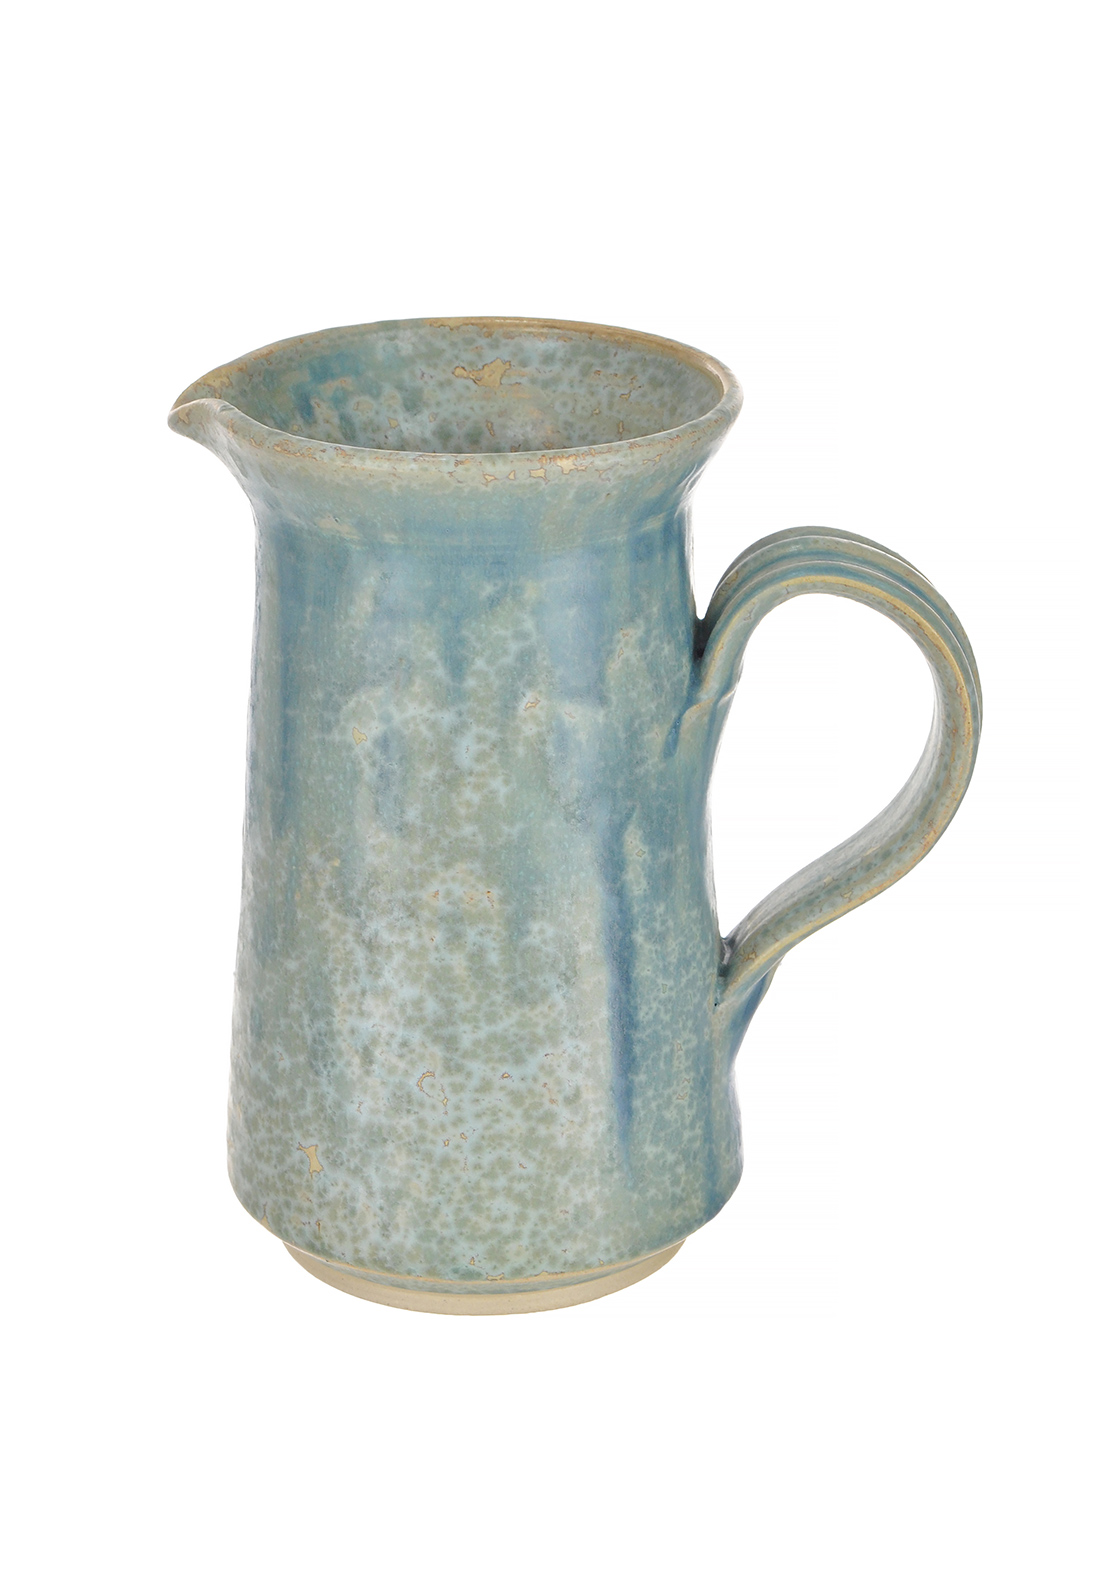 Moville Pottery Medium Jug